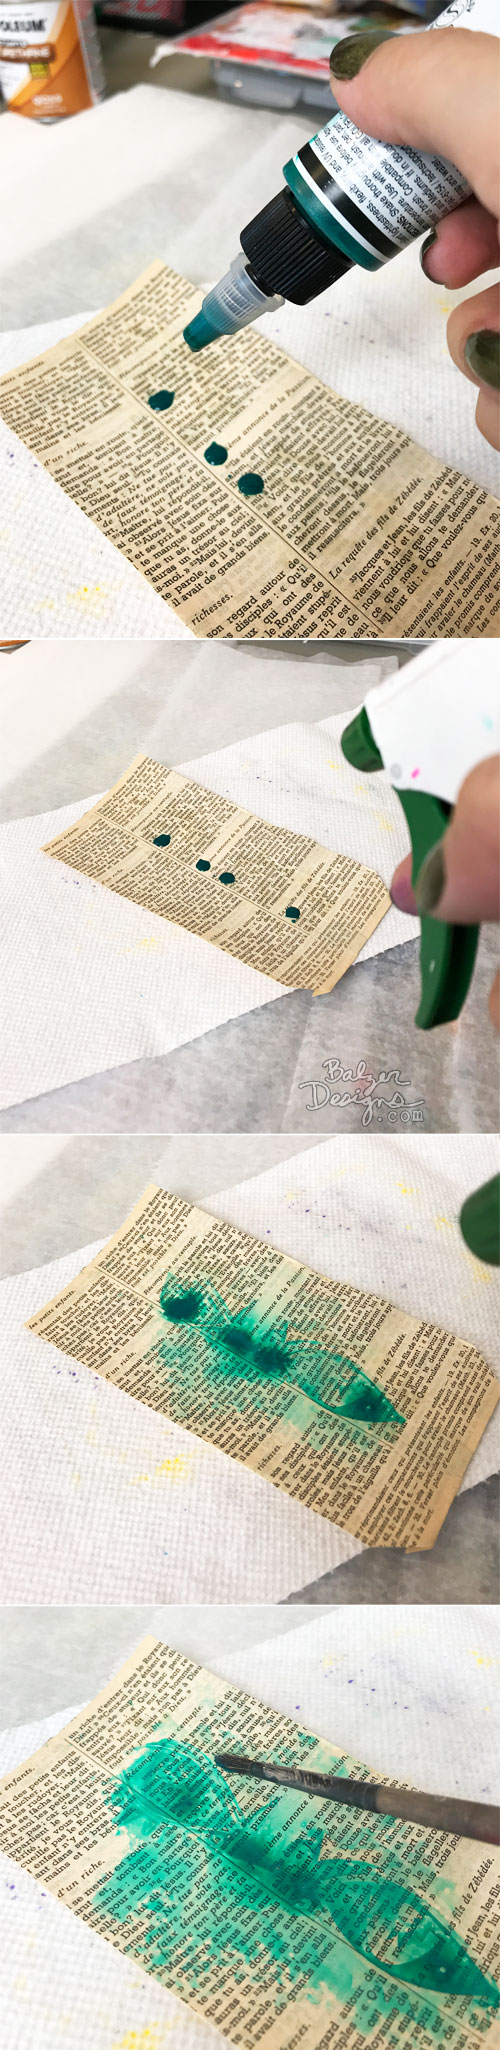 From the Balzer Designs Blog: Summer Stencil Techniques with Suzanne: Irresistible Technique